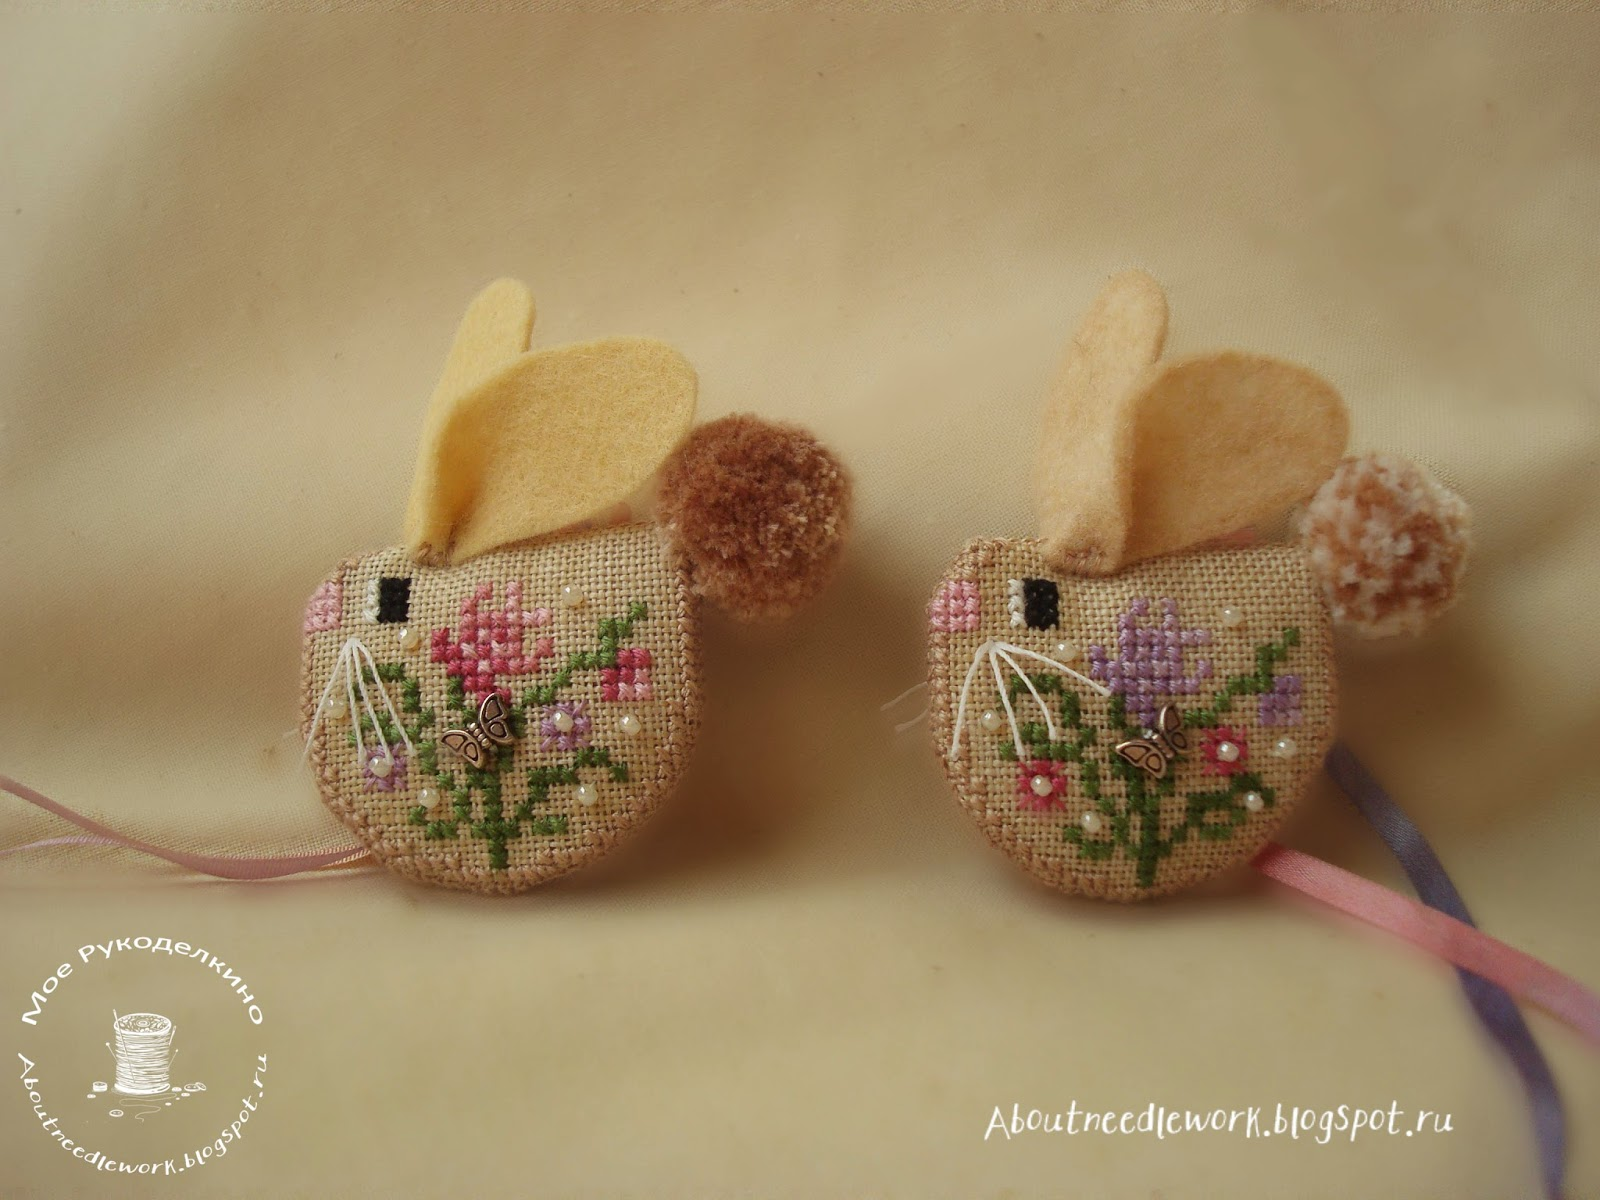 http://aboutneedlework.blogspot.ru/2014/04/just-nan-honey-bunny.html